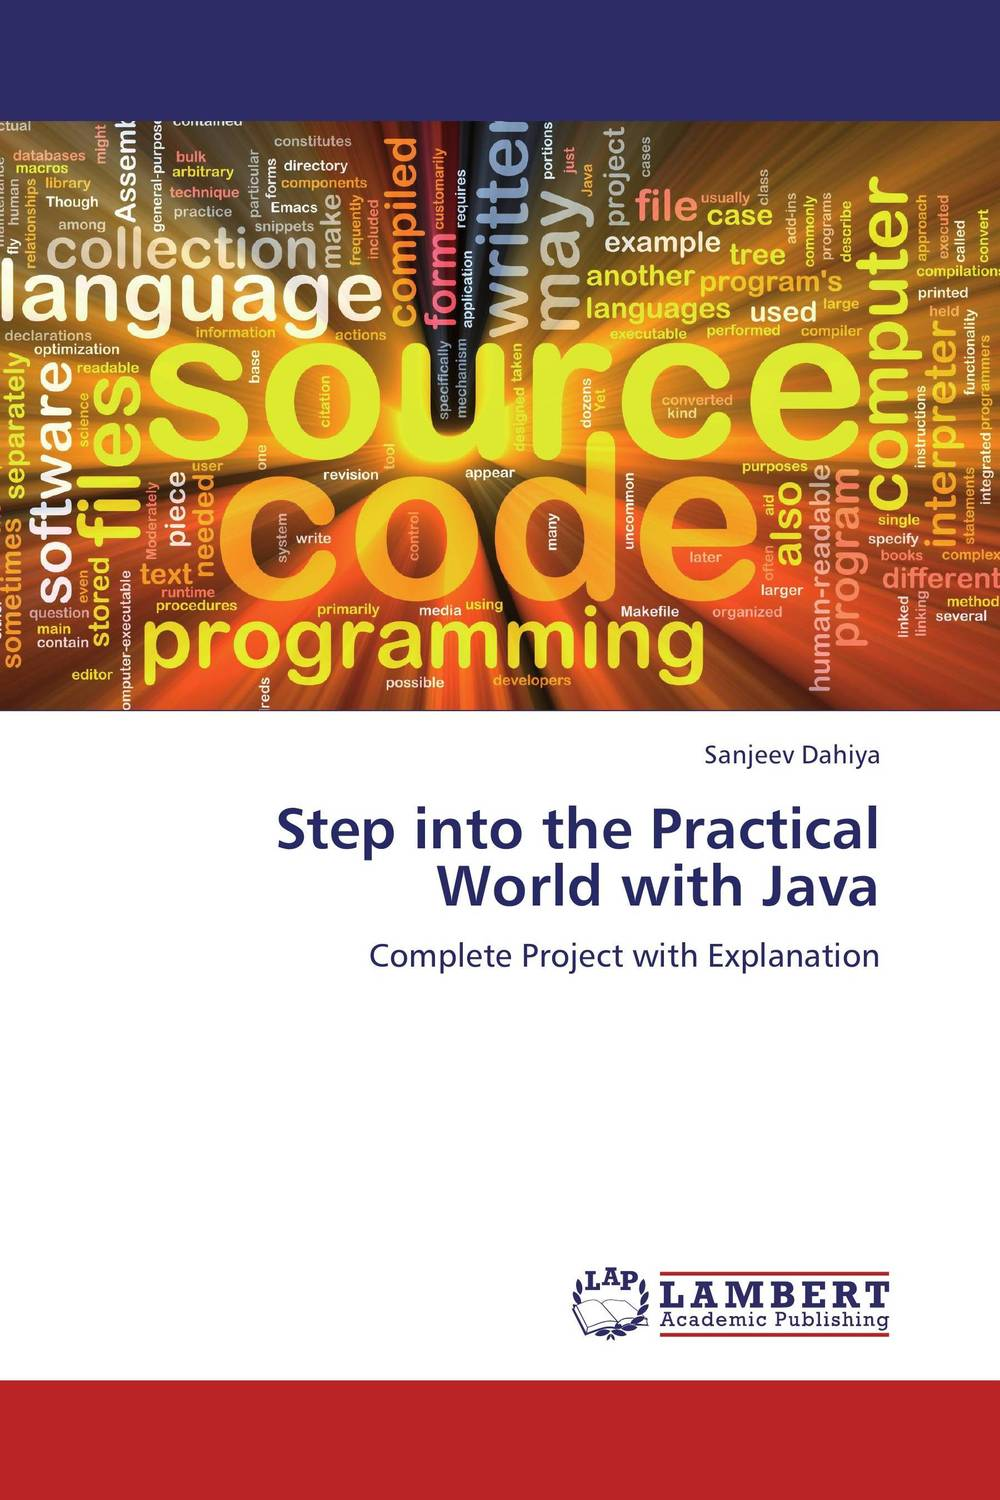 Step into the Practical World with Java who controls the internet illusions of a borderless world